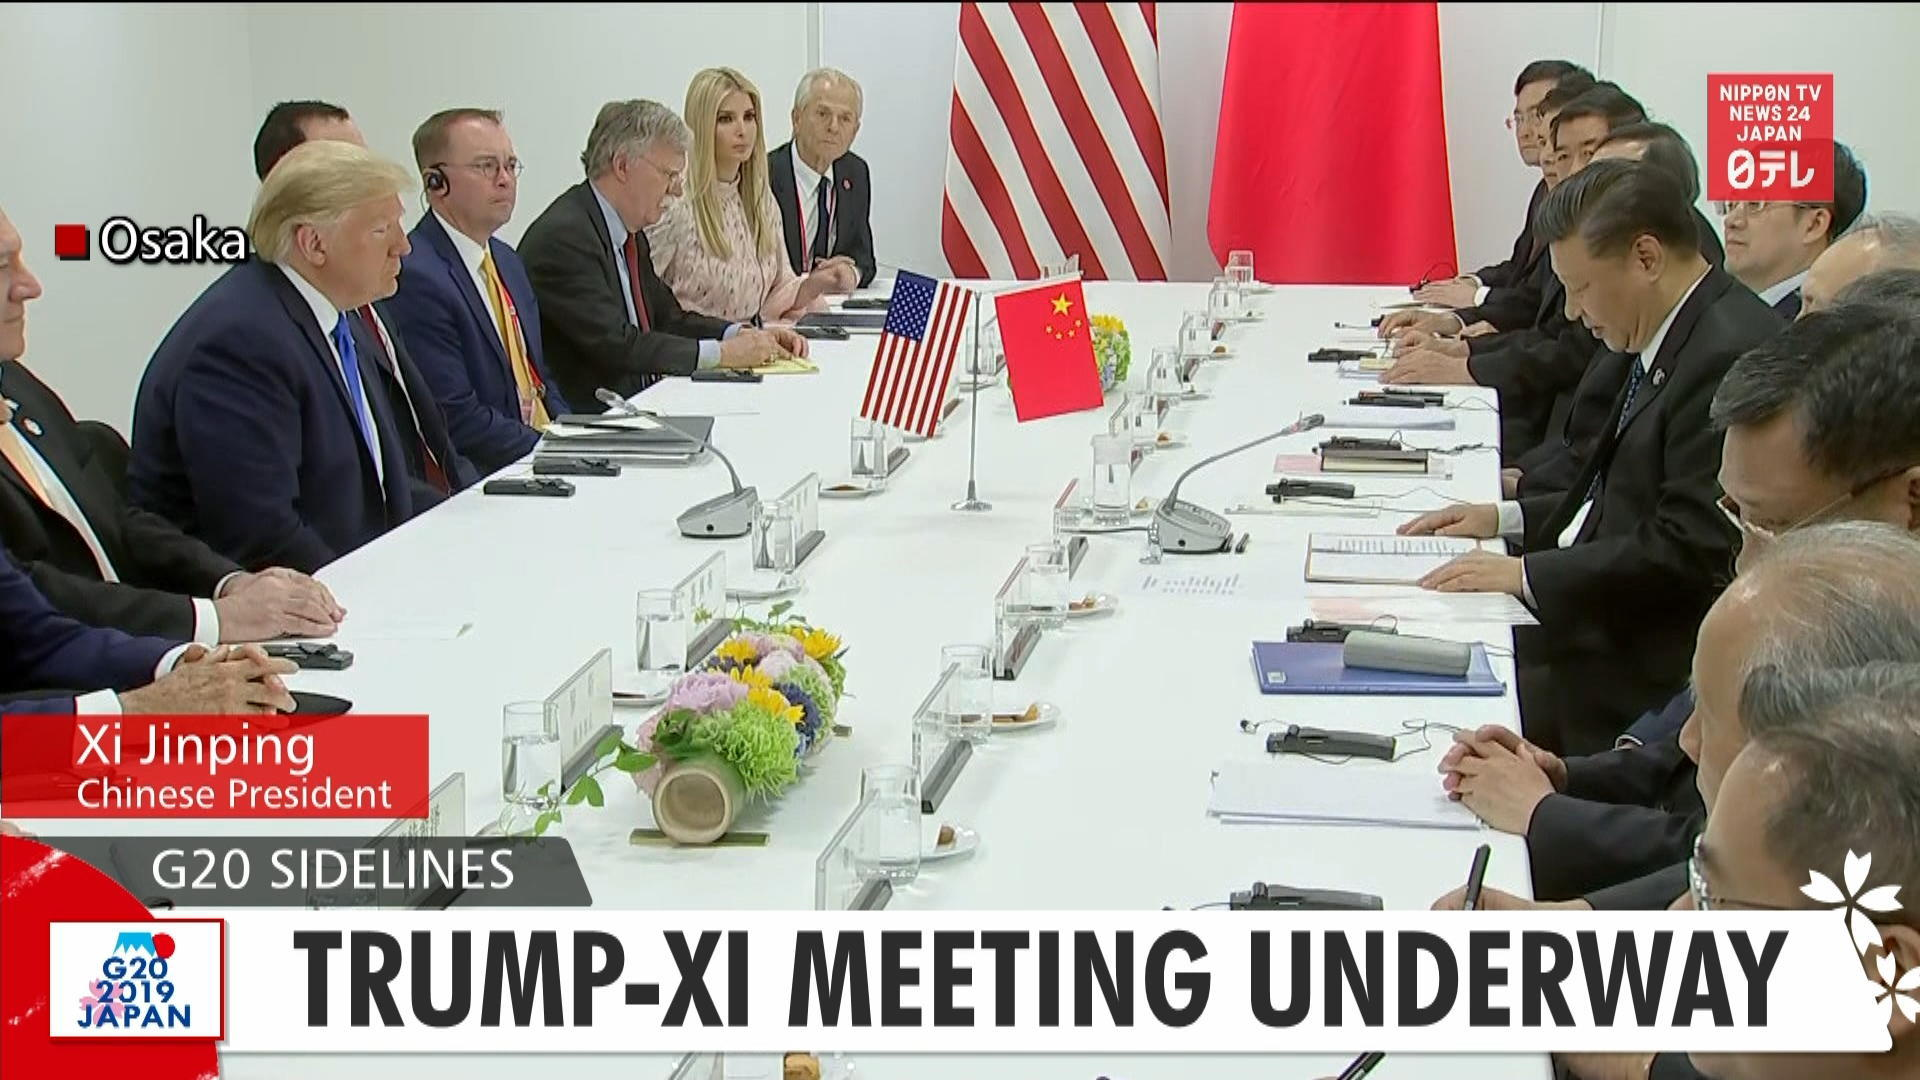 G20: Trump-Xi meeting underway